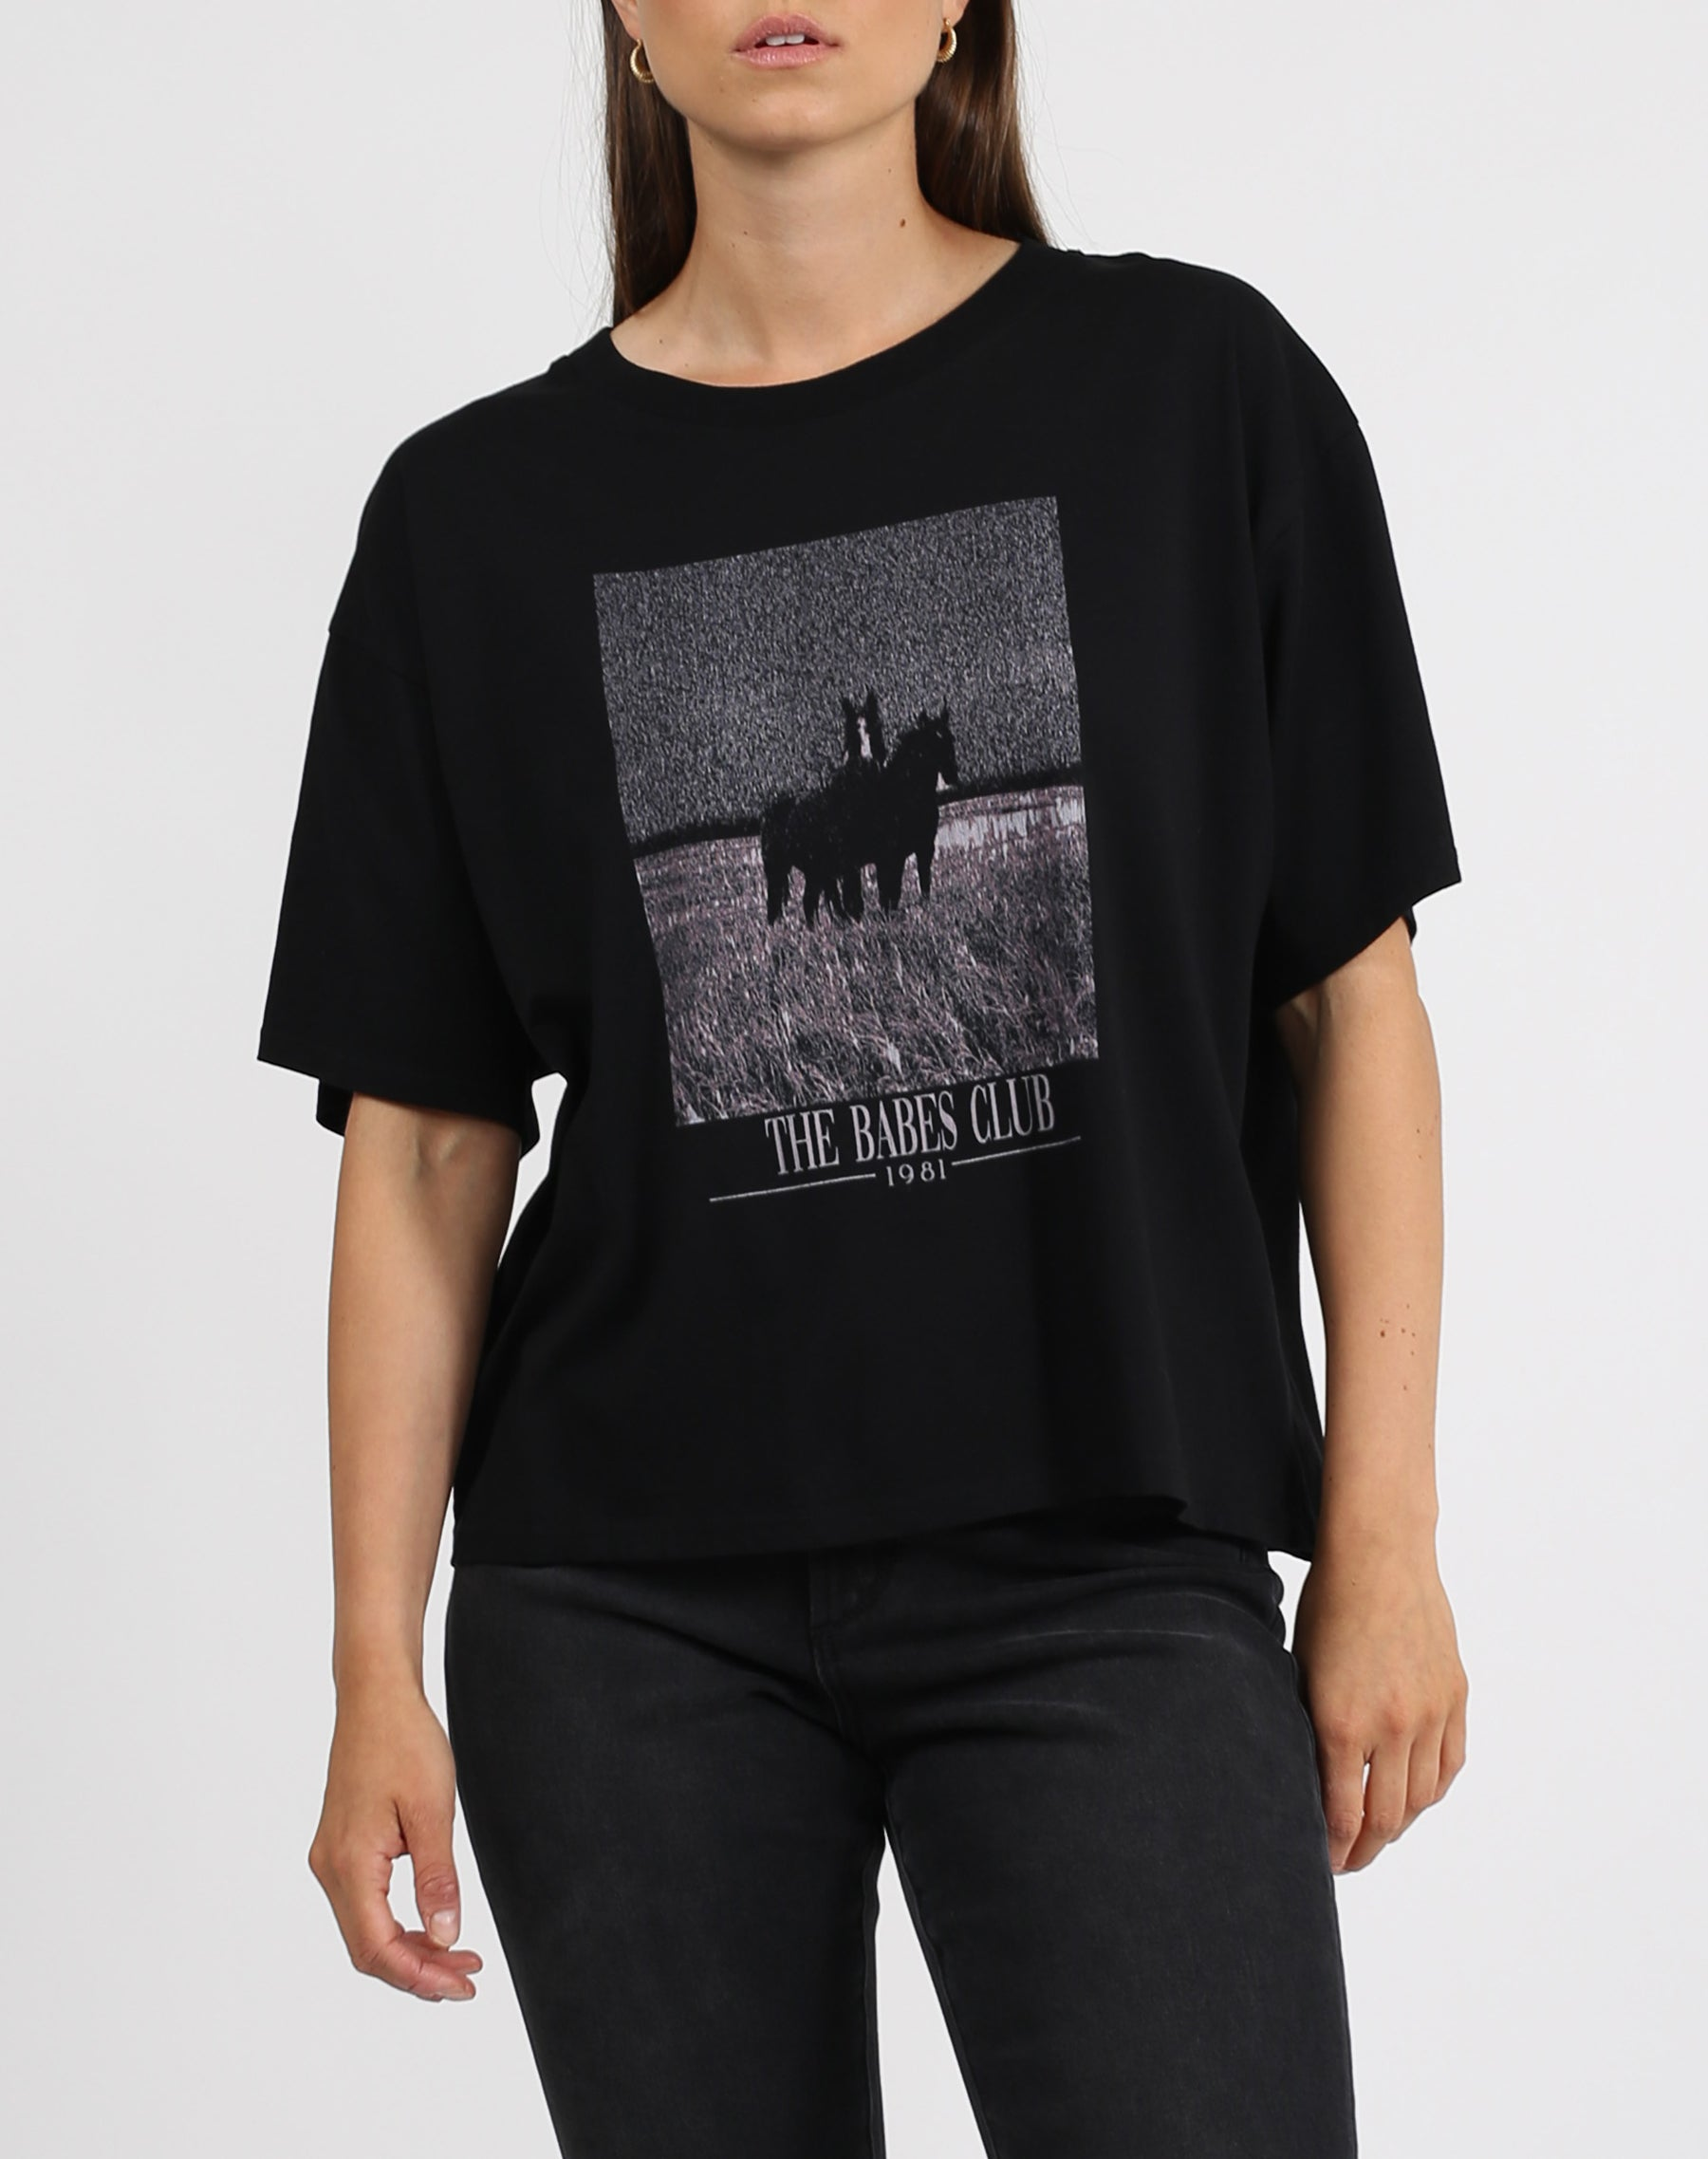 This is a photo of a model wearing the babes club horse boxy crew neck tee in black by brunette the label.